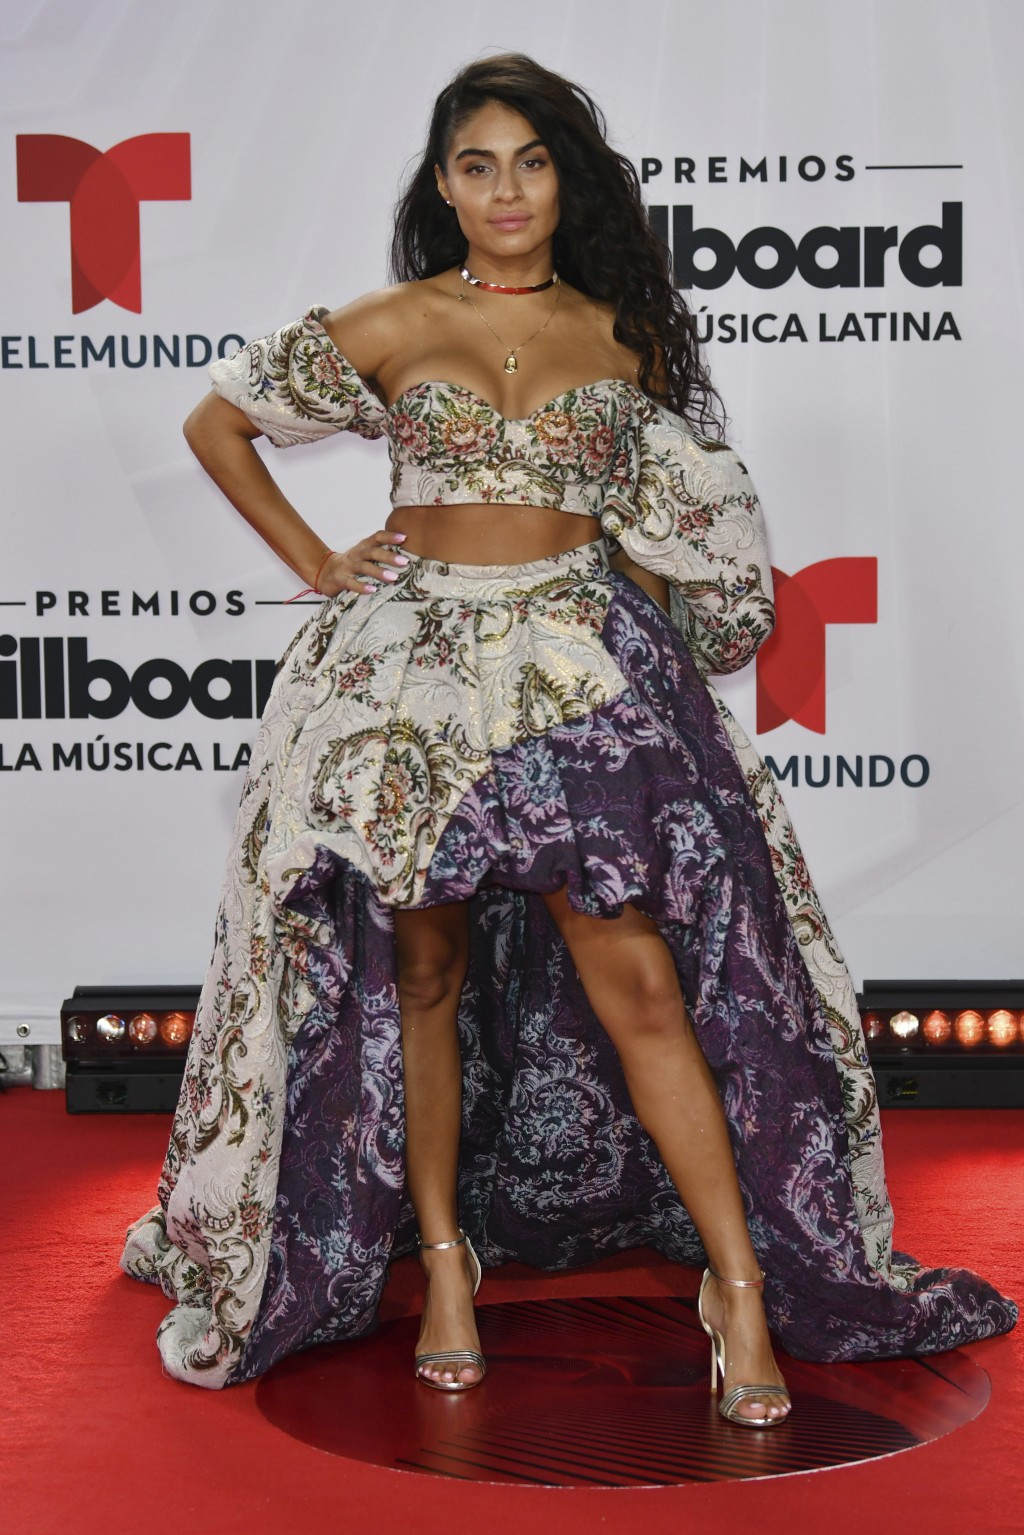 Jessie Reyez arrives at the Billboard Latin Music Awards on Wednesday, Oct. 21, 2020, at the BB&T Center in Sunrise, Fla. (Jim Rassol/Invision/AP)